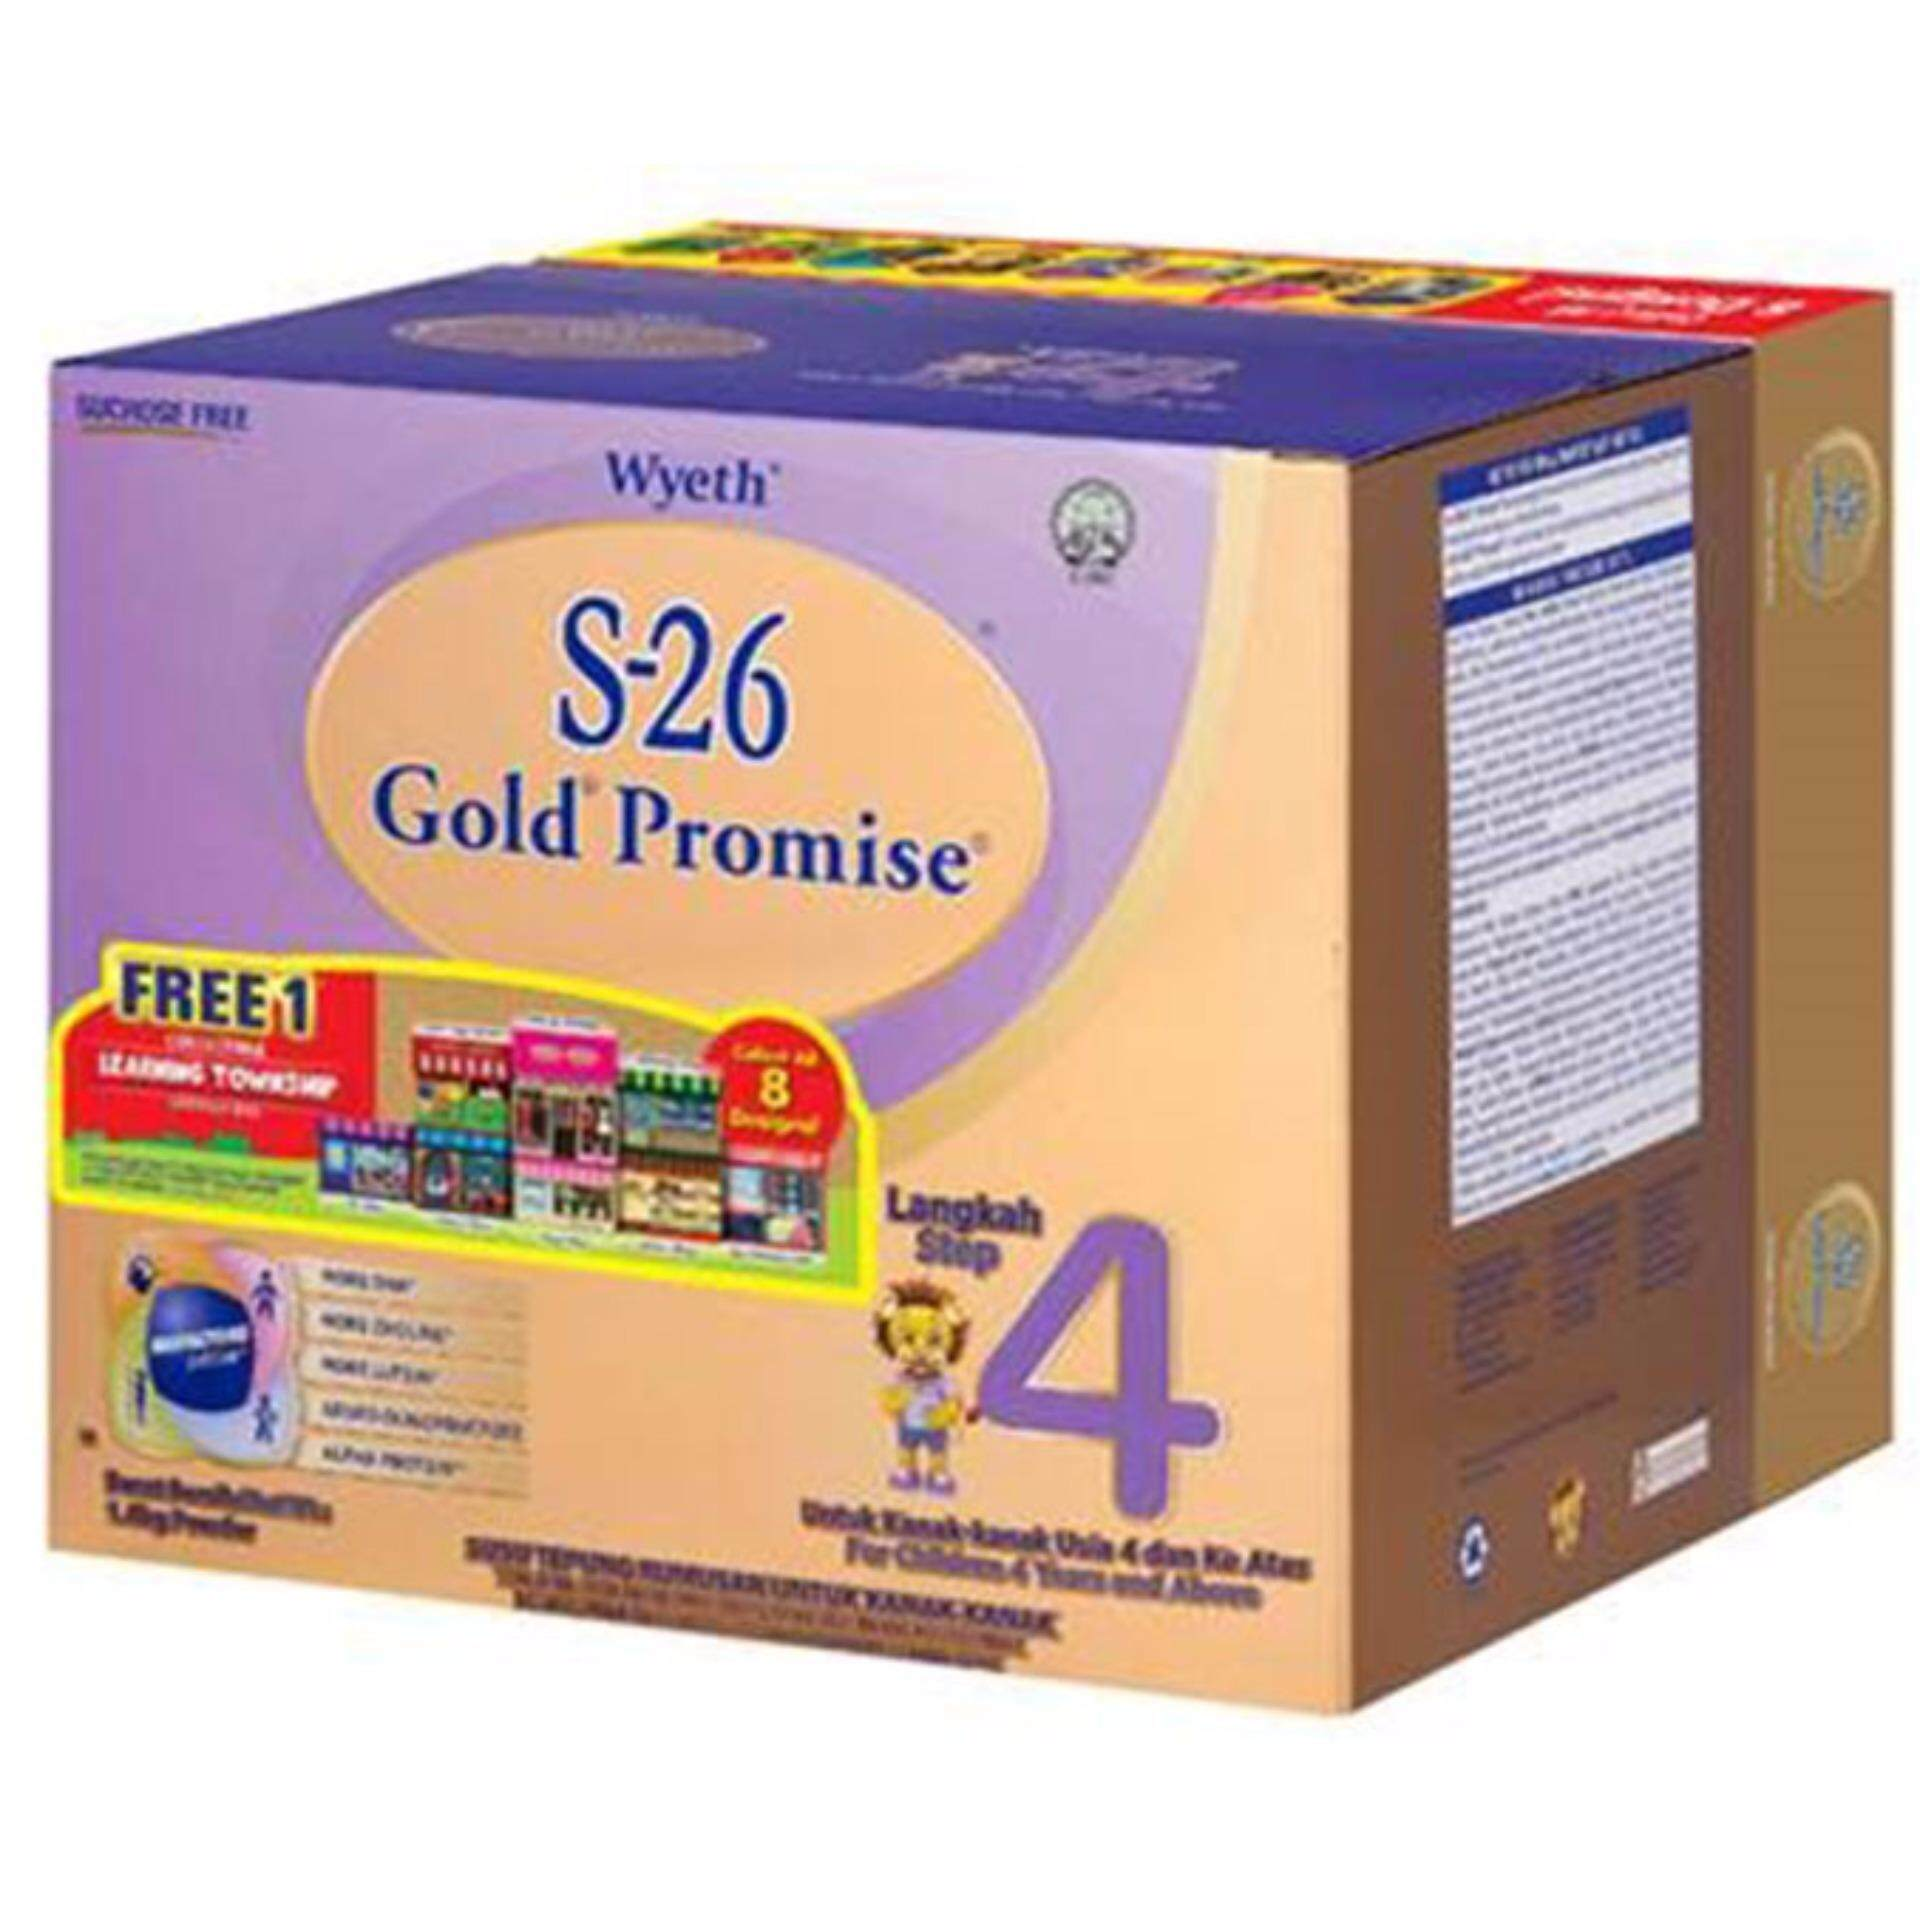 Harga Jual Obral Wyeth S 26 Promise Gold Tahap 4 Vanila 900gr Promil 2 Kemasan Baru Growing Up Milk 3yrs By Reviews Ratings And Best Price In